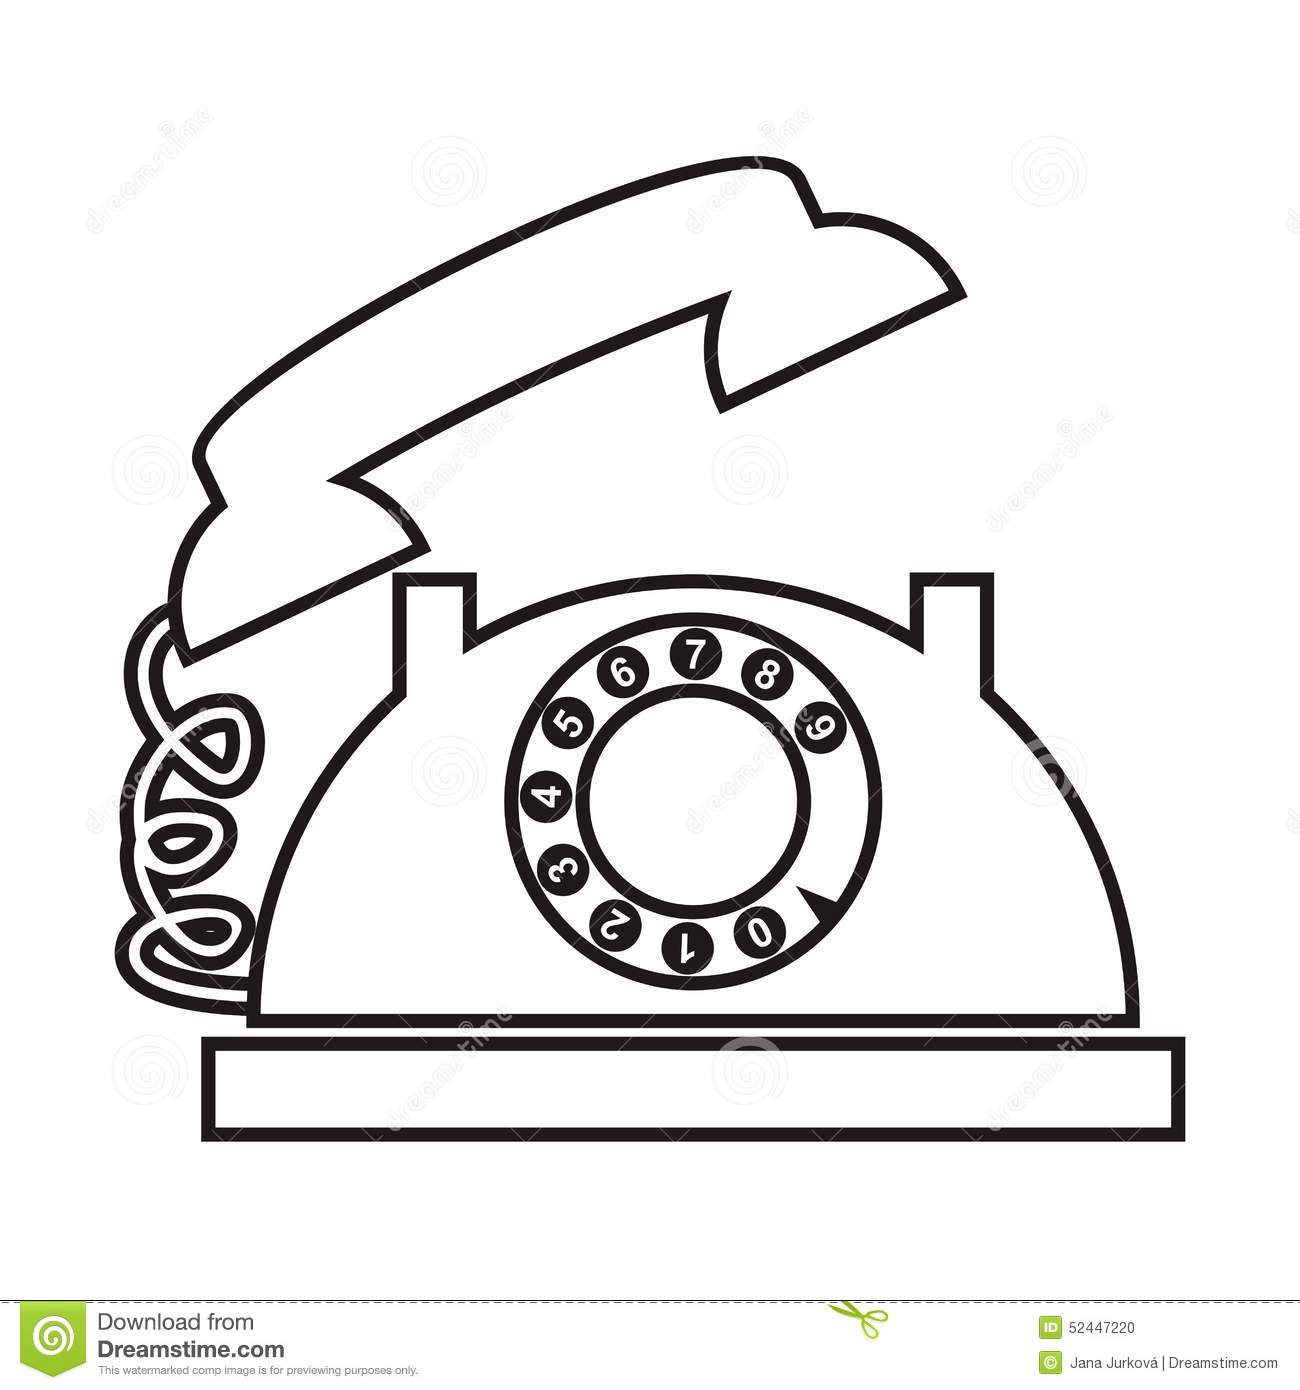 telephone coloring stock illustrations vectors clipart dreamstime dial black silhouette coloring pages Telephone Coloring Page